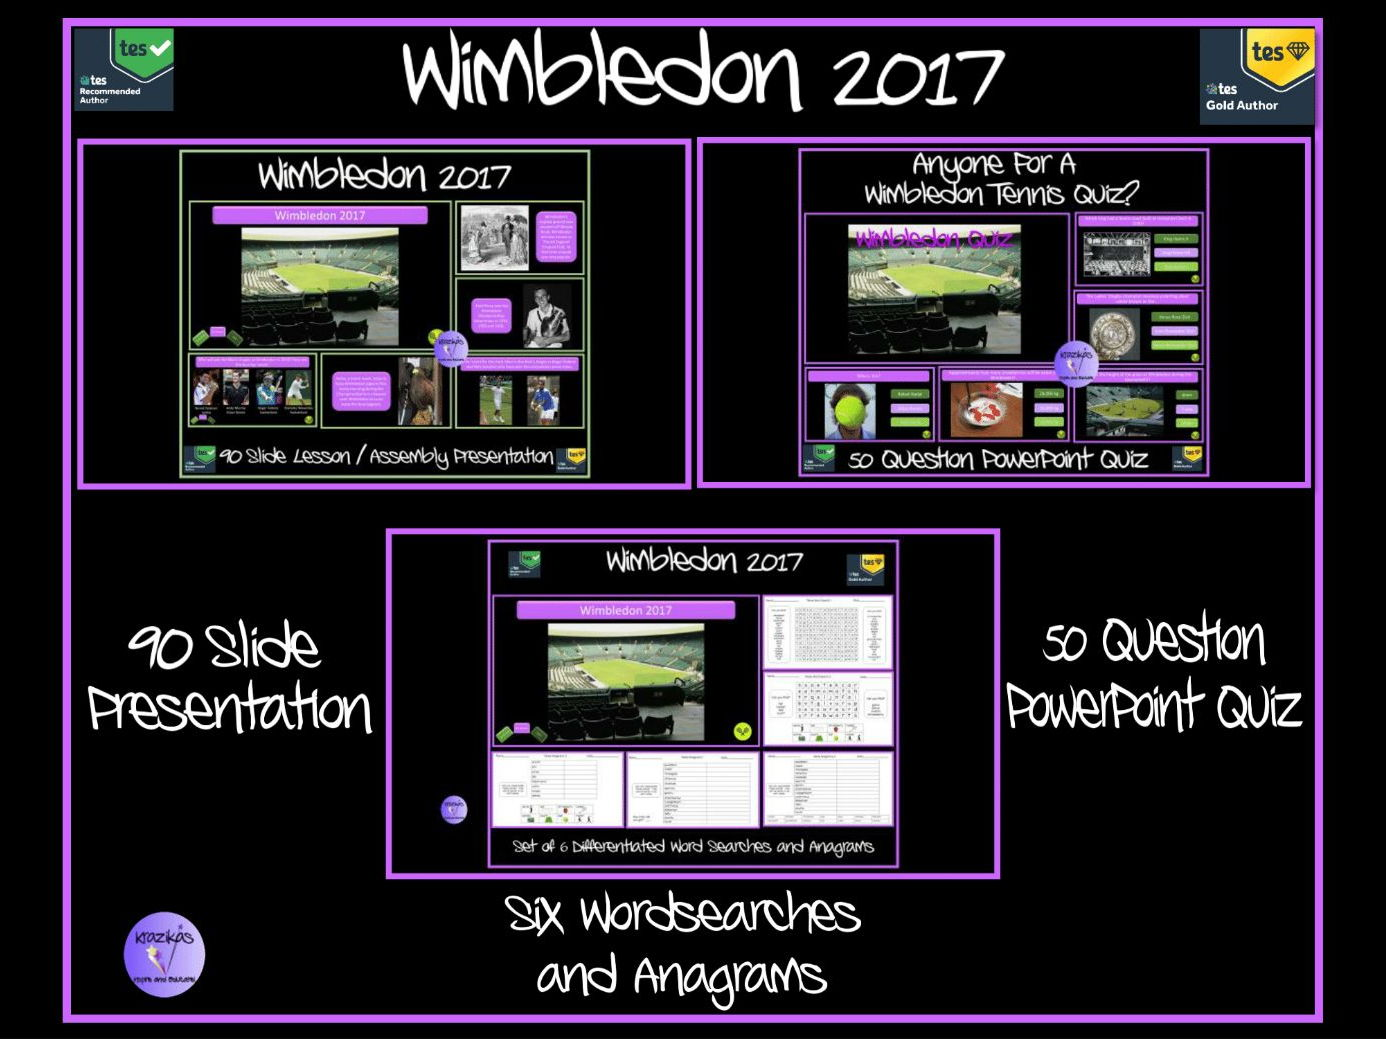 Wimbledon 2017 - 90-Slide Lesson / Assembly Presentation, 50 Question Quiz and set of 6 Differentiated, Tennis-Themed Word Searches and Anagrams